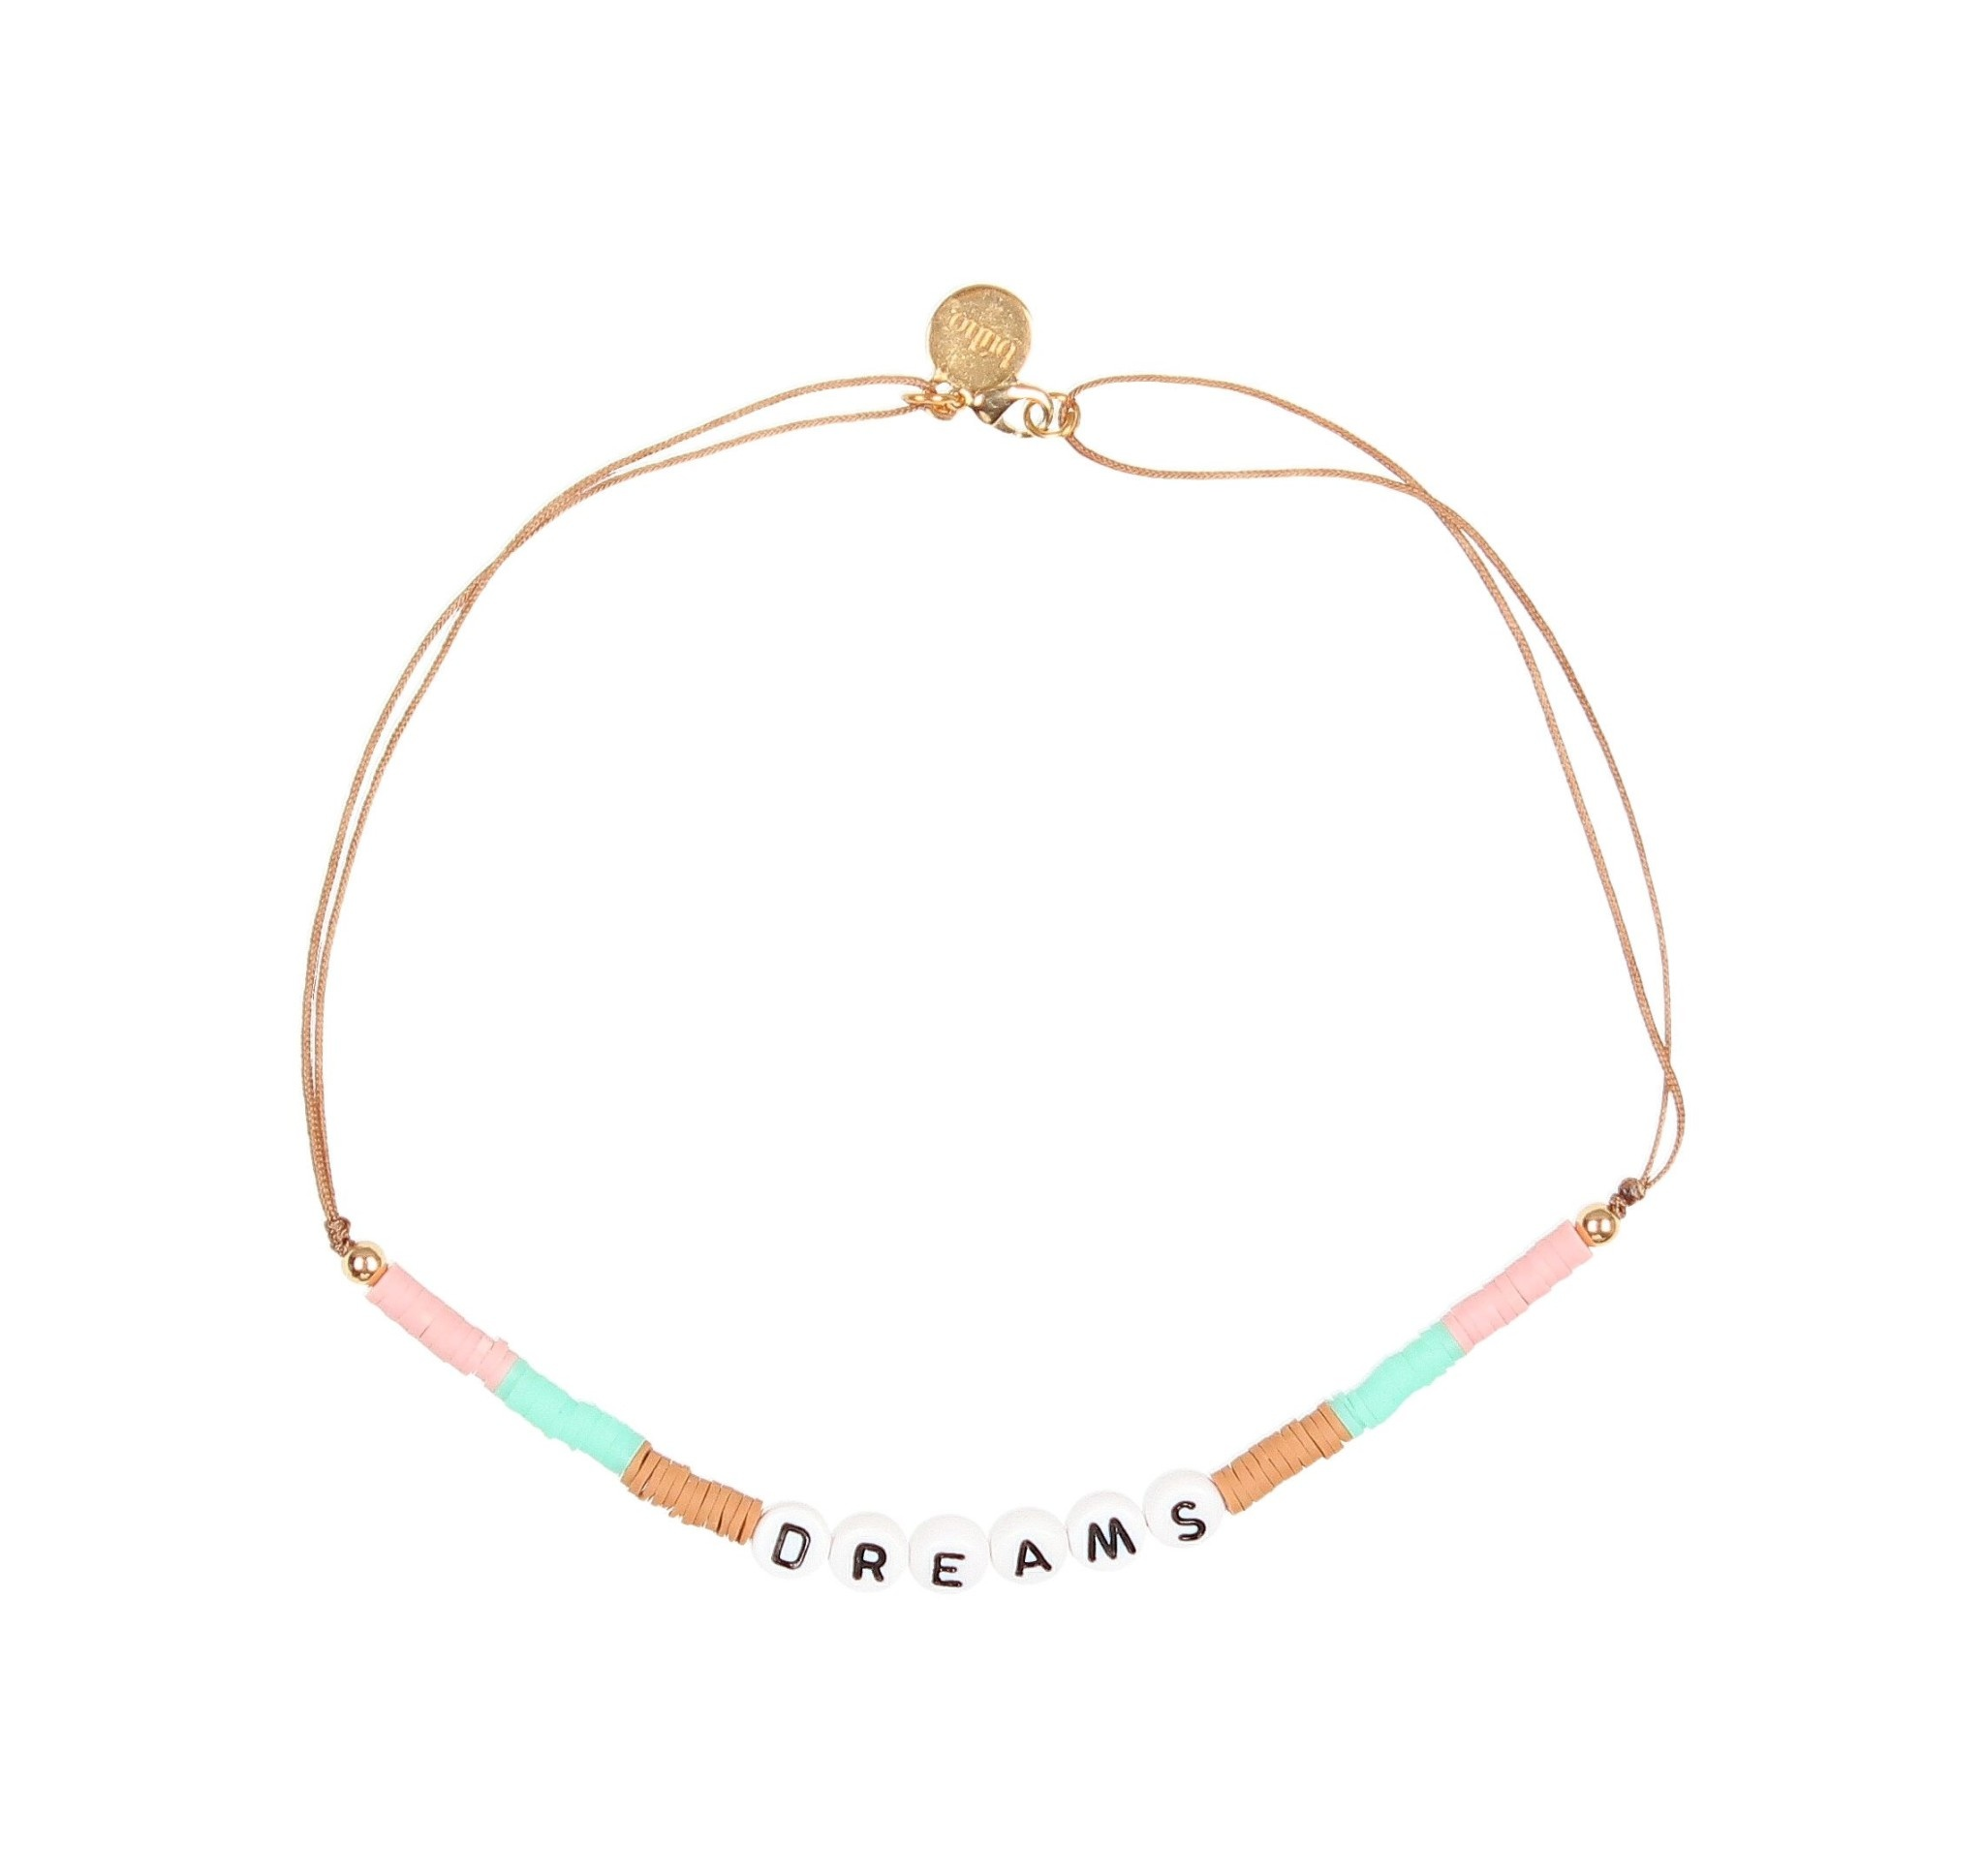 BUHO Dream Necklace